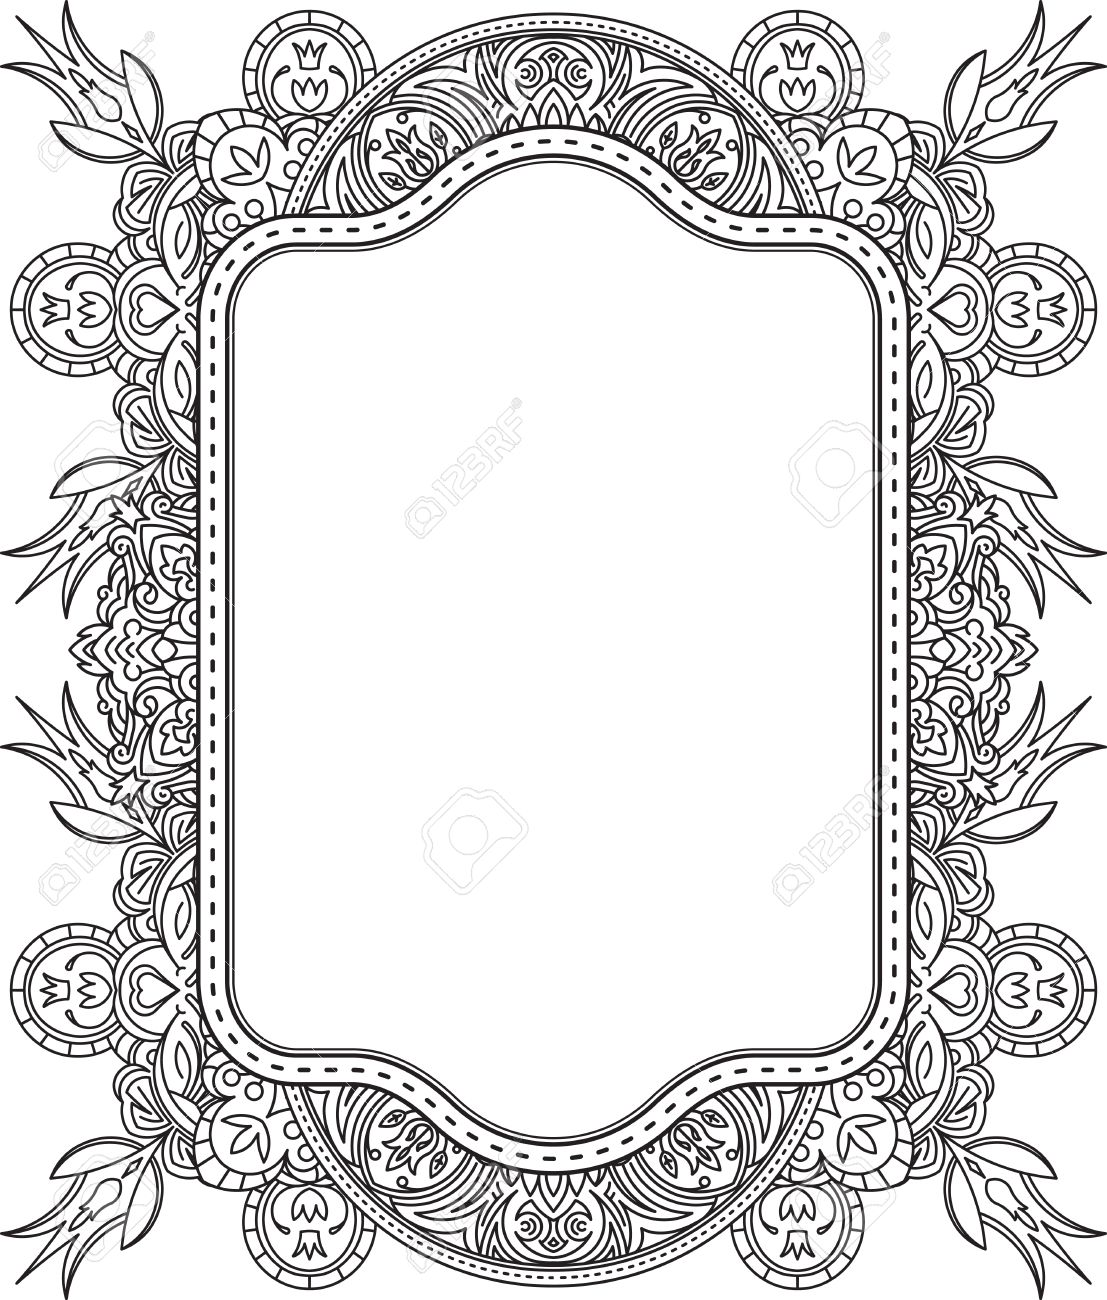 Ethnic Template For Design Wedding Invitations And Greeting Cards ...